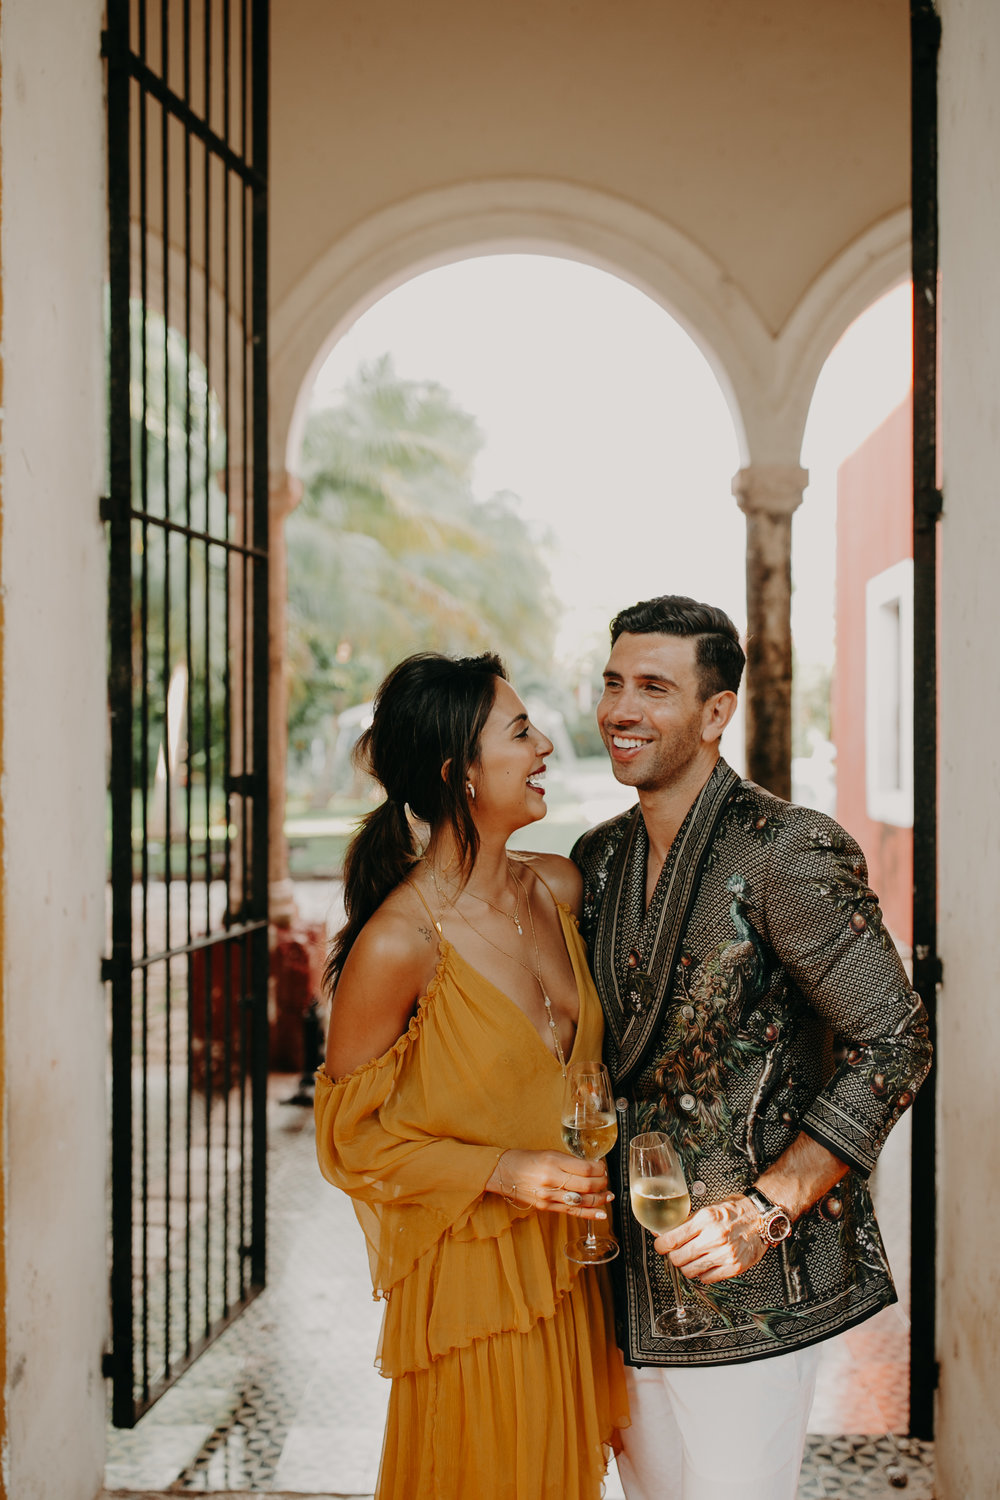 Hacienda Temozon Yucatan Mexico Wedding | Ida & Peter Emily Magers Photography-92.jpg